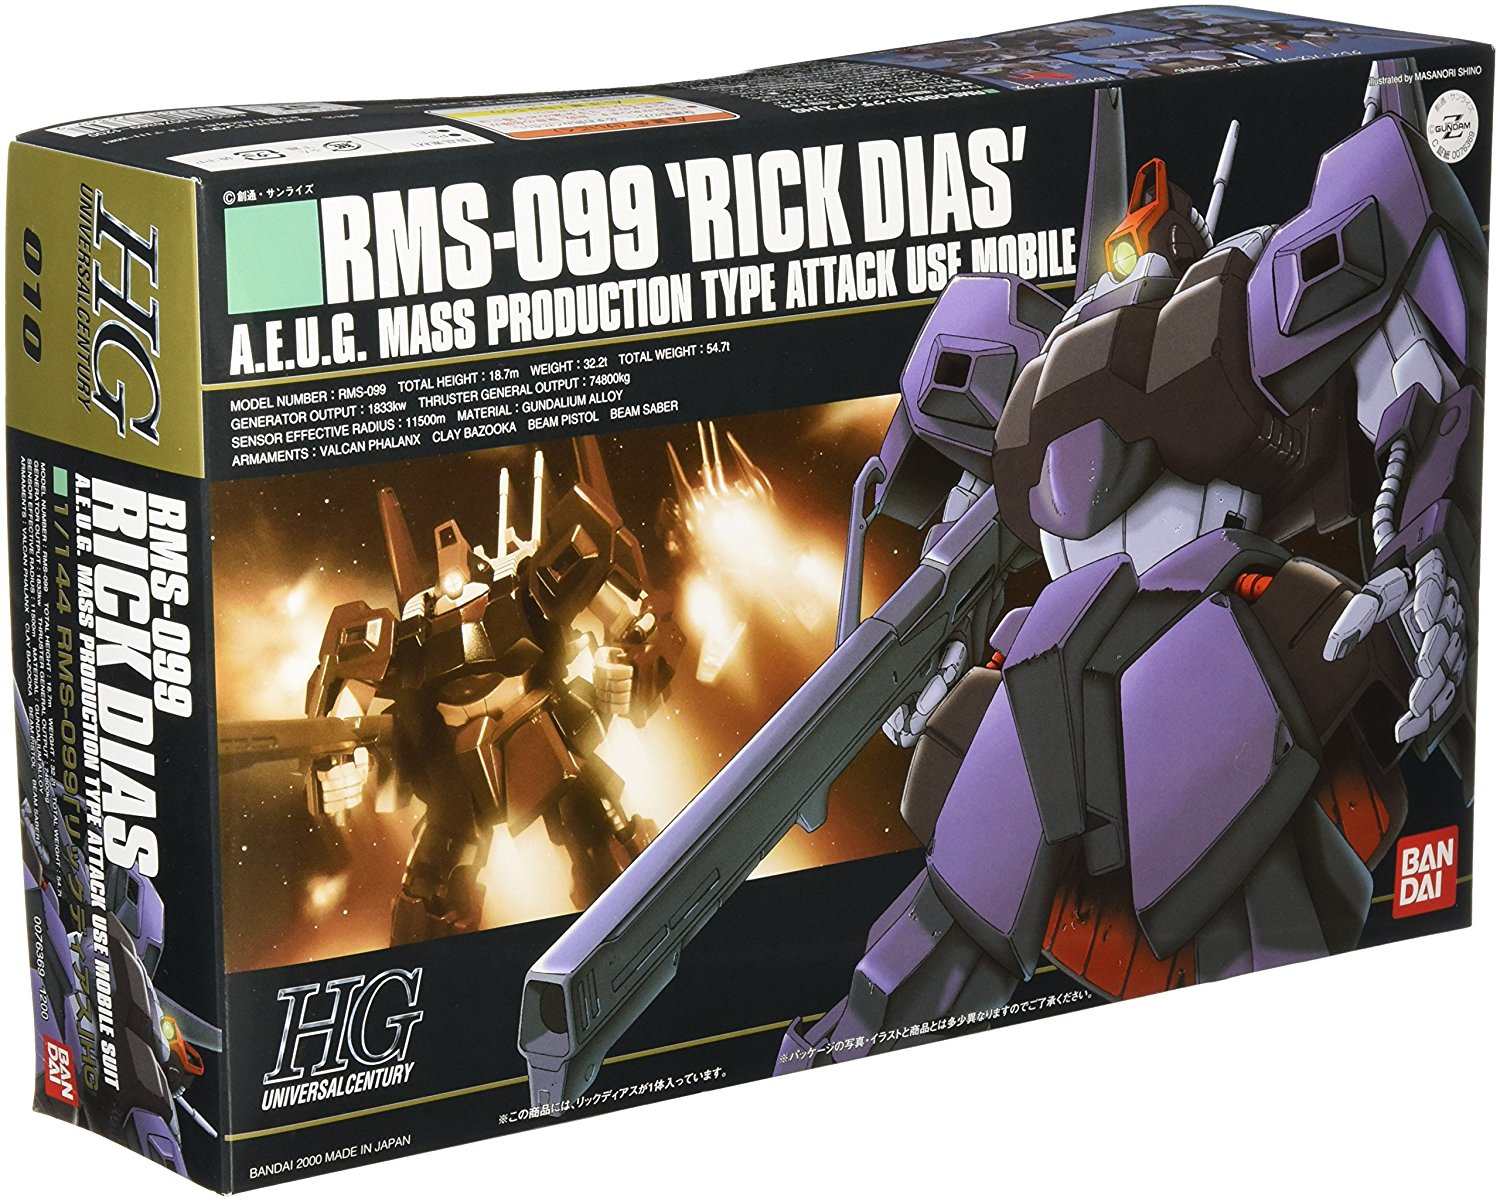 RMS-099 Rick Dias HGUC 1 144 Scale, 1 144 Scale assembly model kit By Gundam by